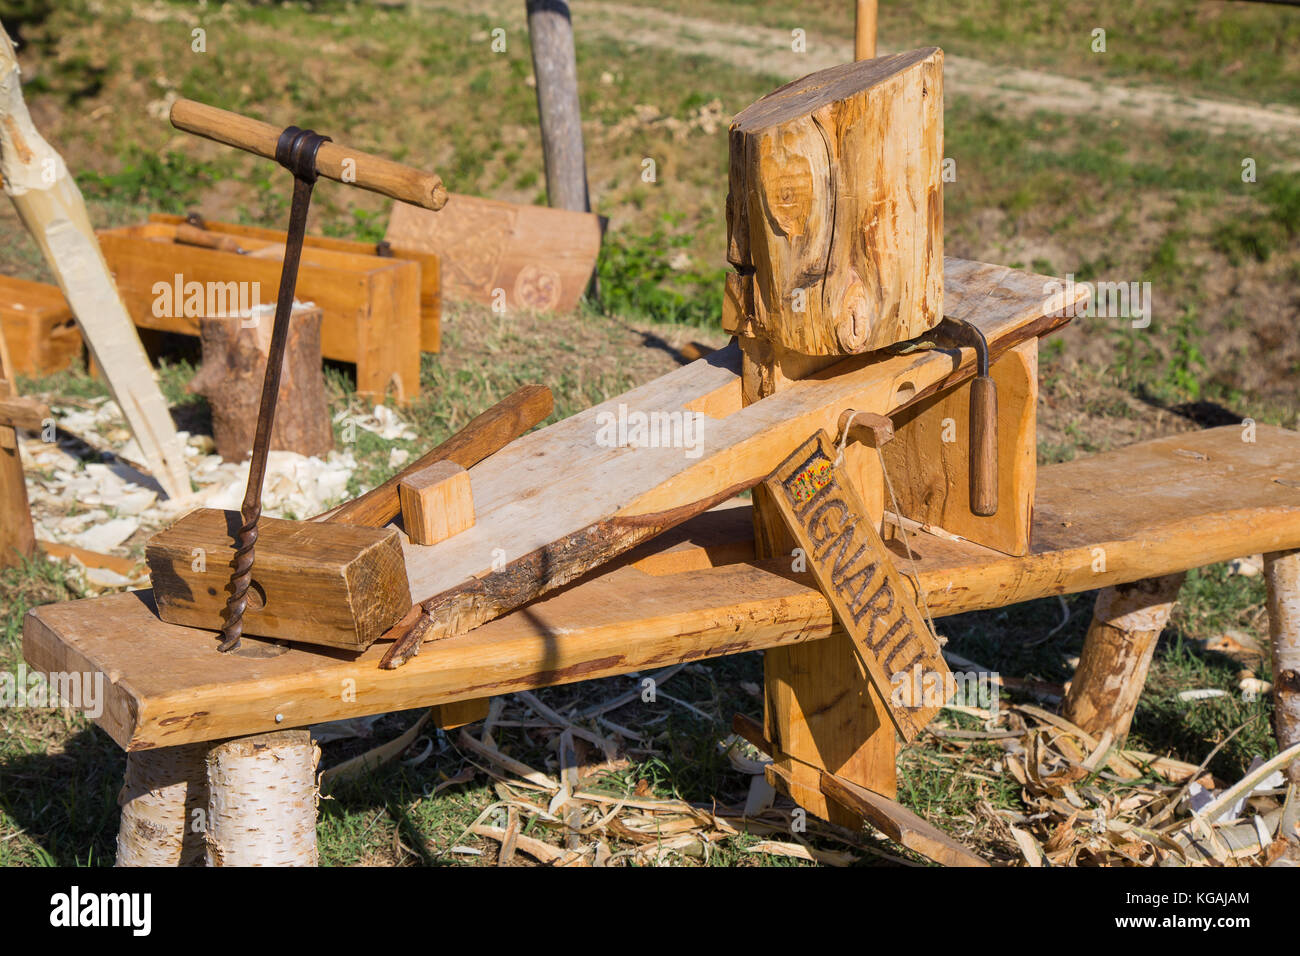 Ancient woodworking equipment. - Stock Image